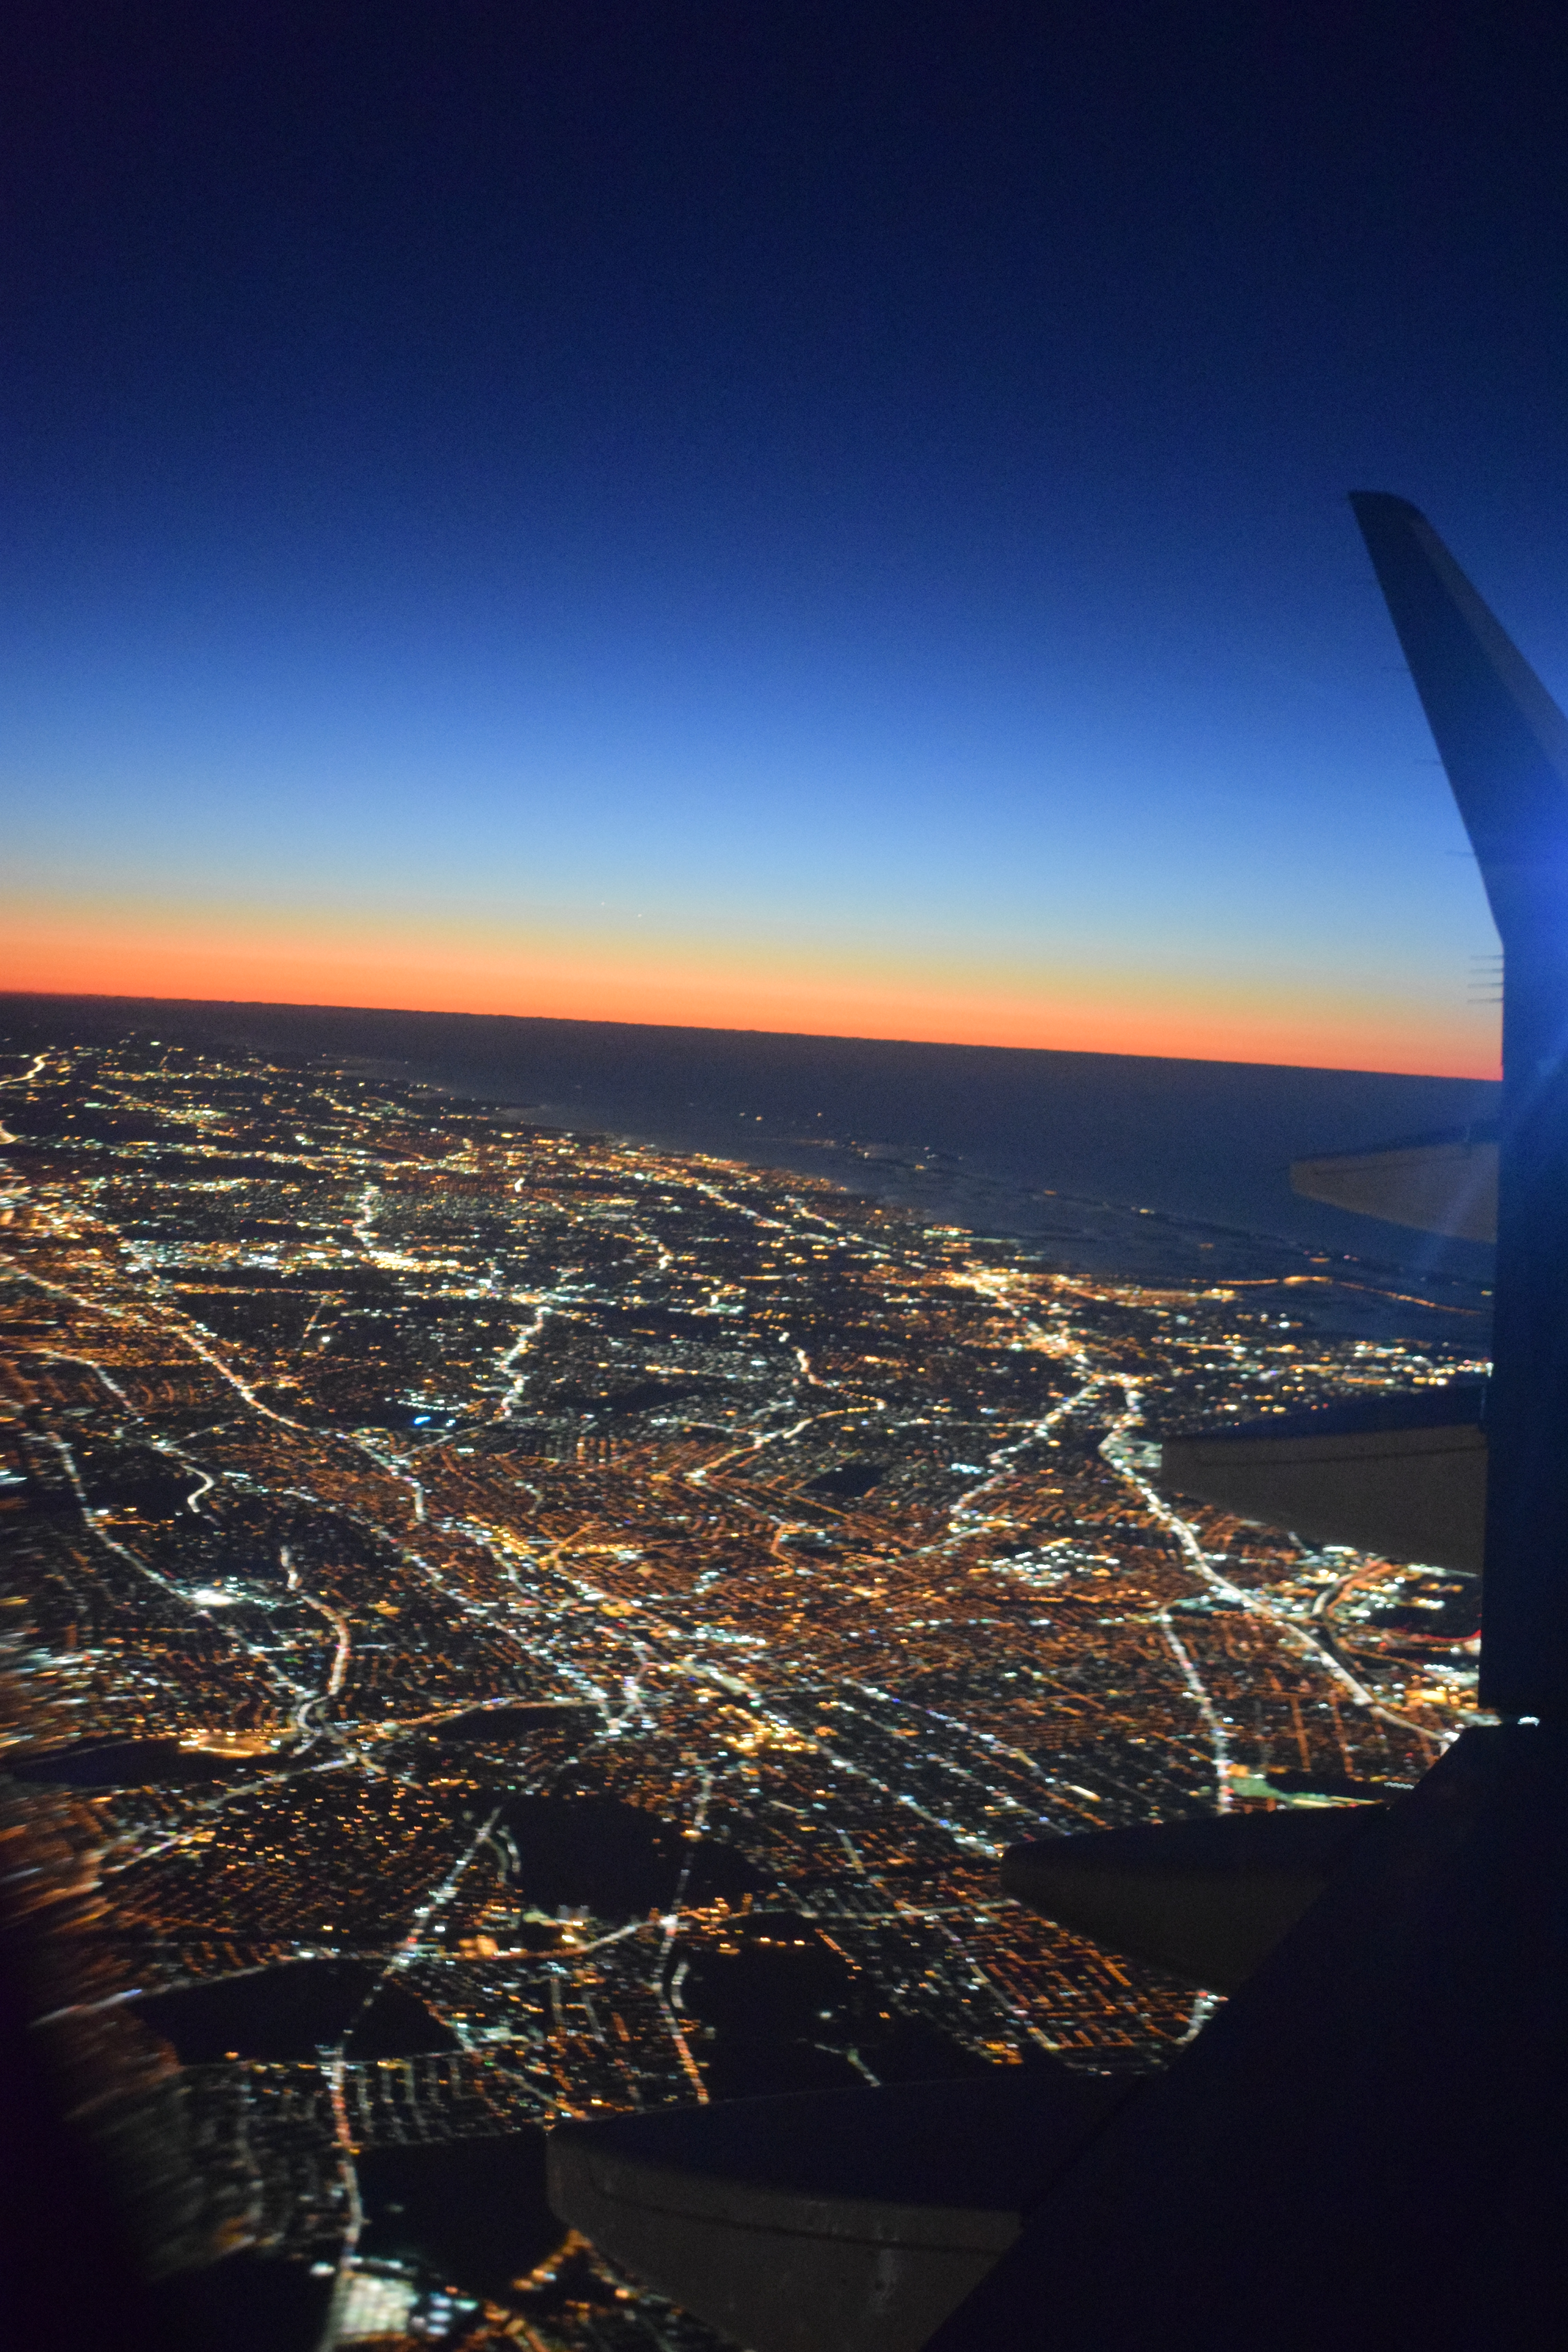 Phenomenal evening aerial view of New York City from 6000 feet above on a plane and sunset in the horizon.